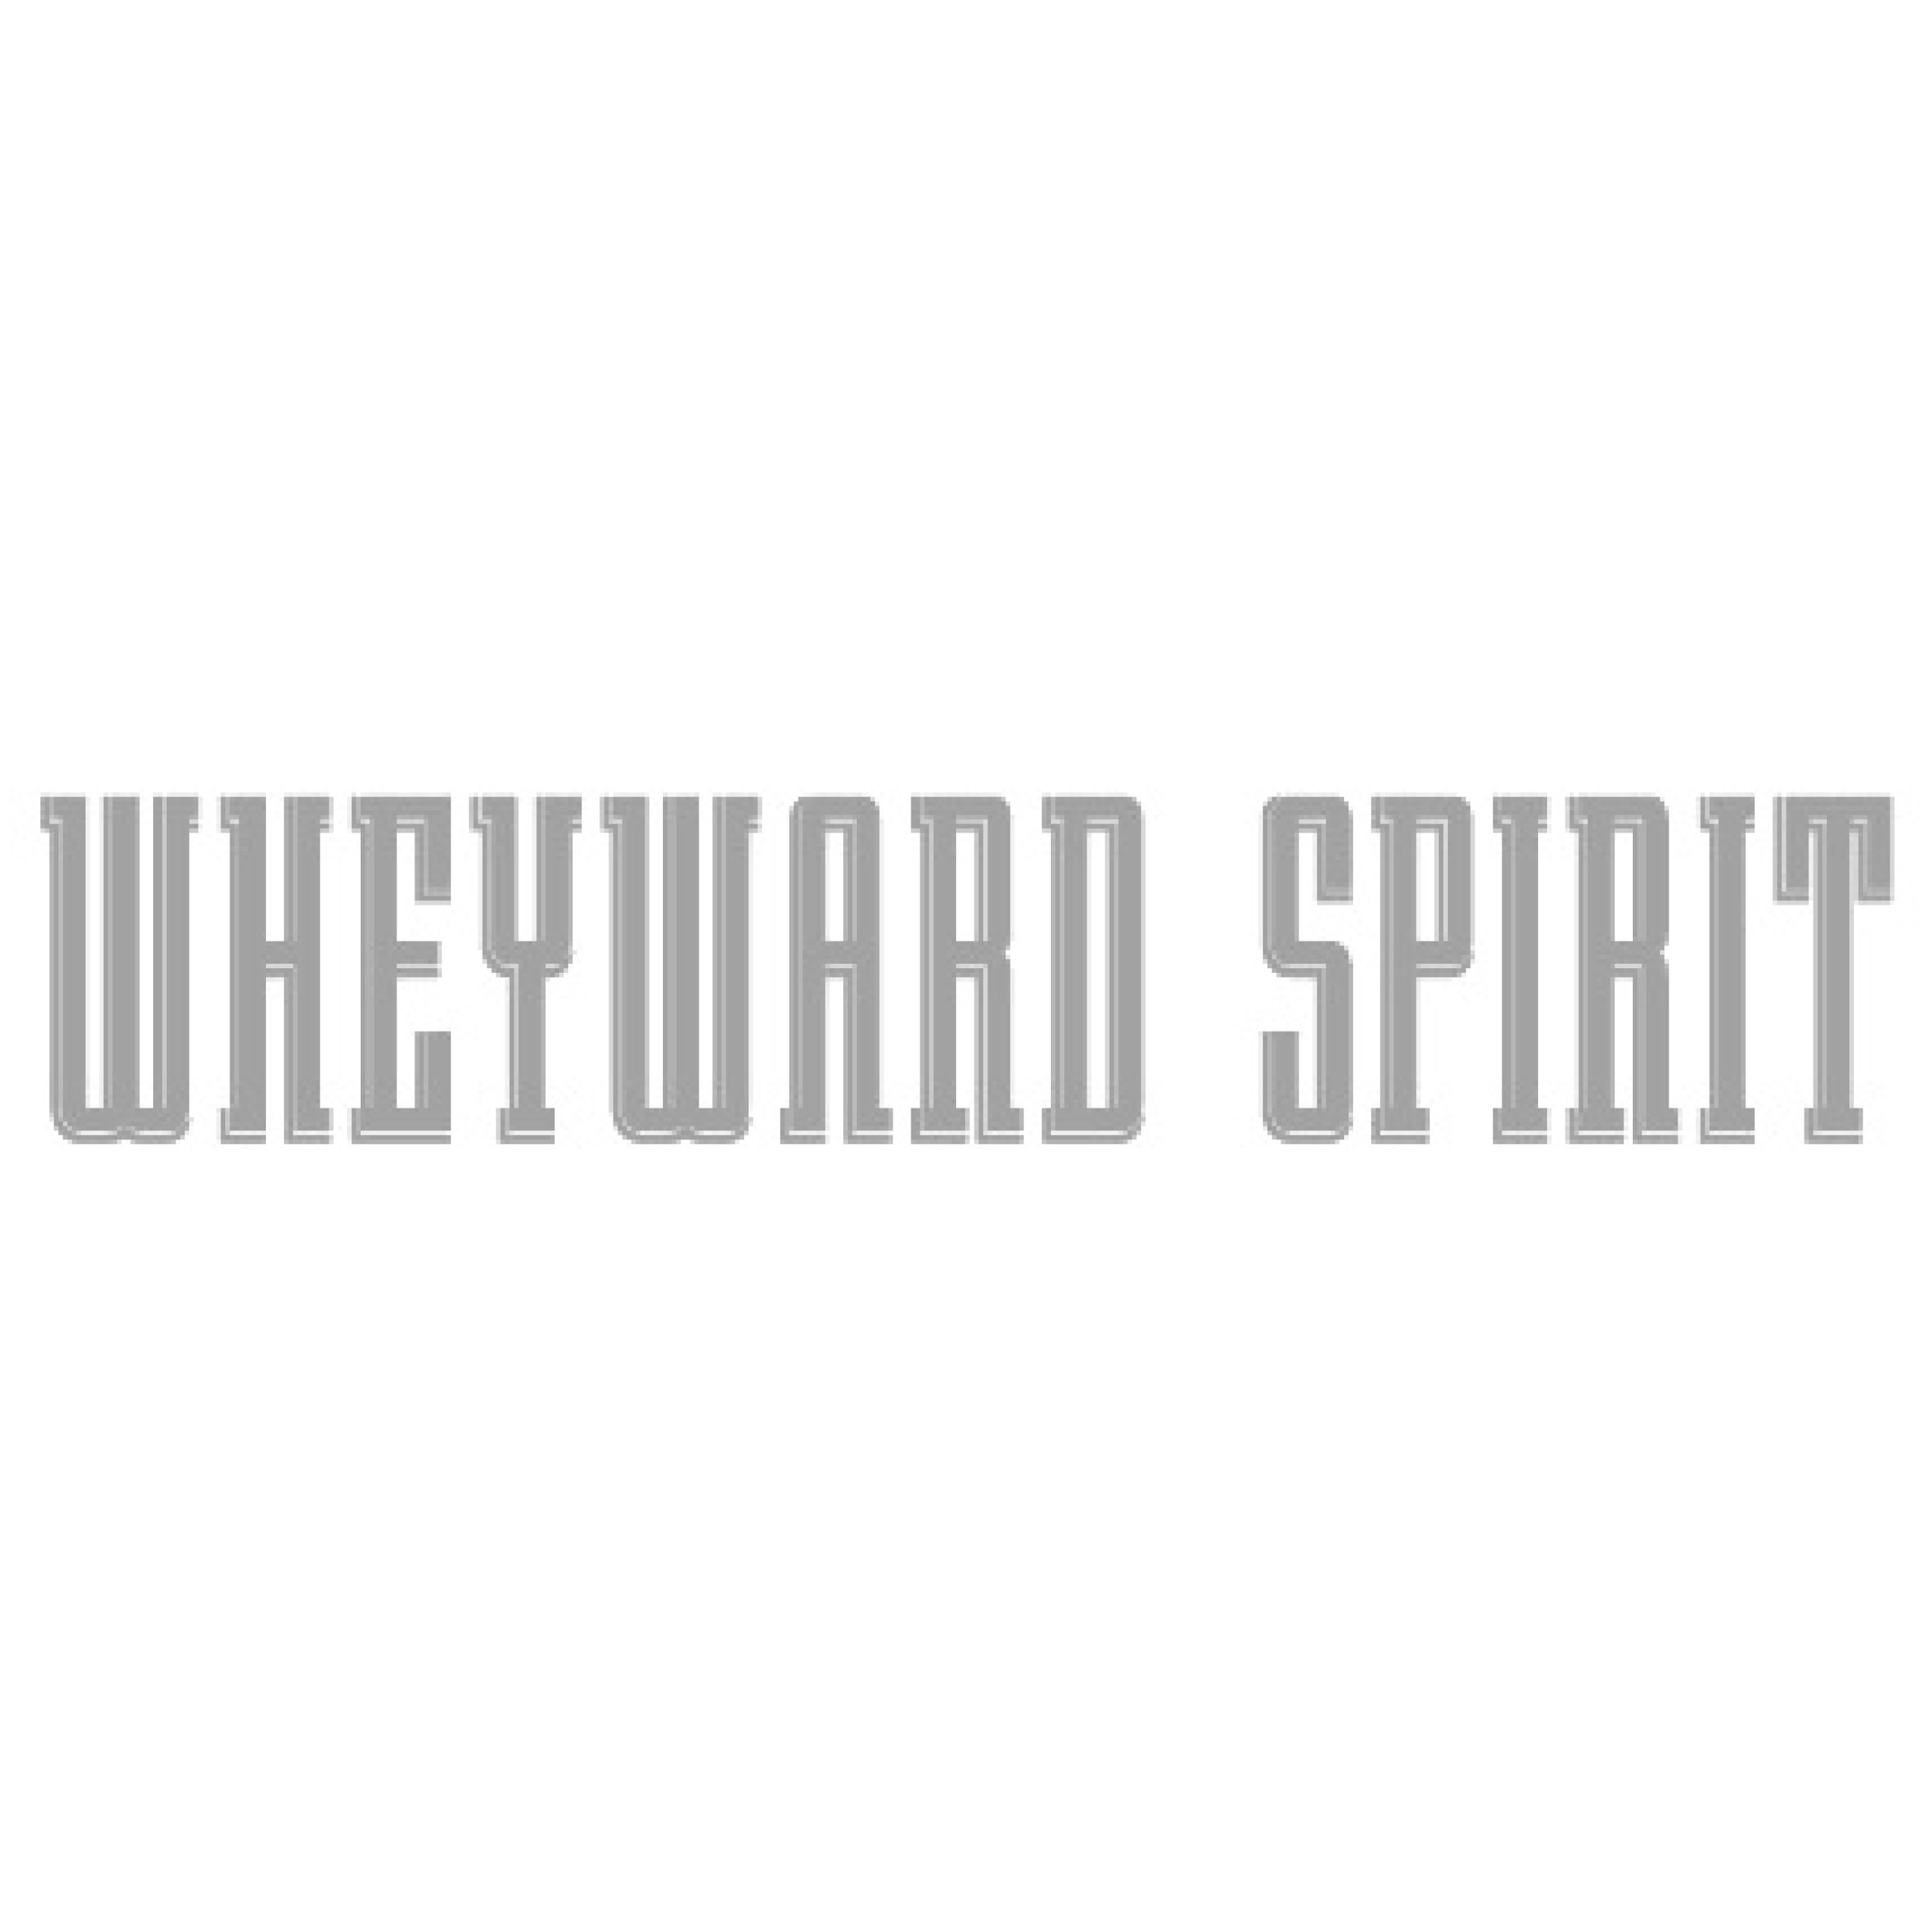 spirits Distilled from dairies' excess whey - preventing food waste, and with a lower carbon and water footprint. -